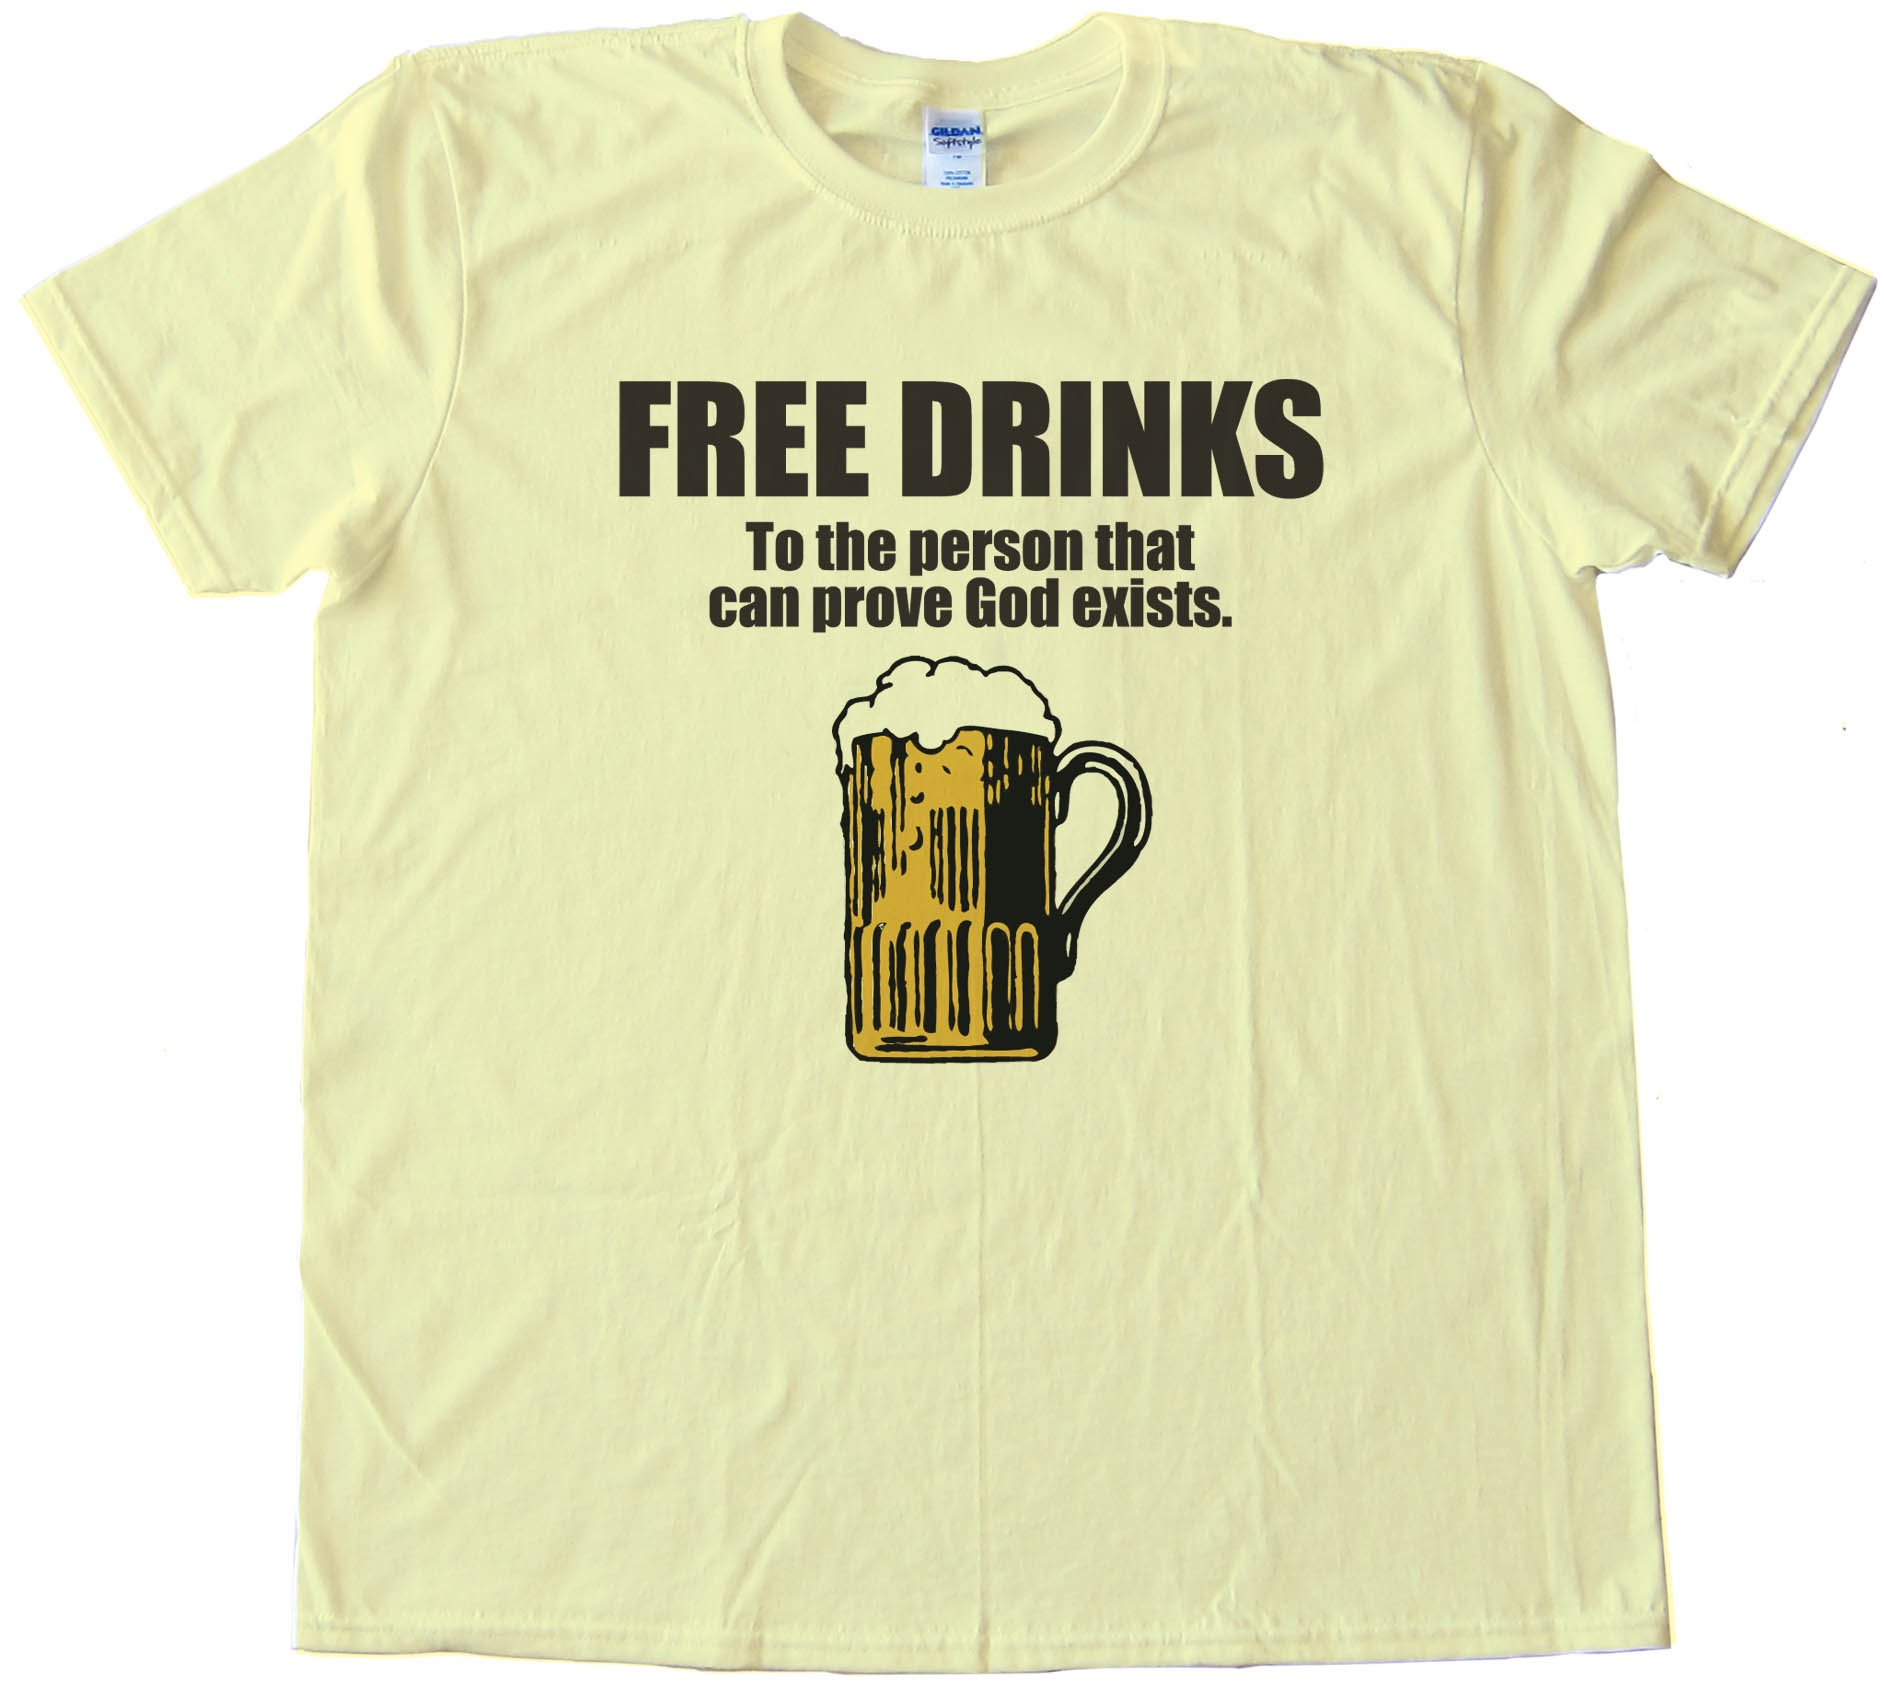 Free Drinks To The Person That Can Prove God Exists -Tee Shirt